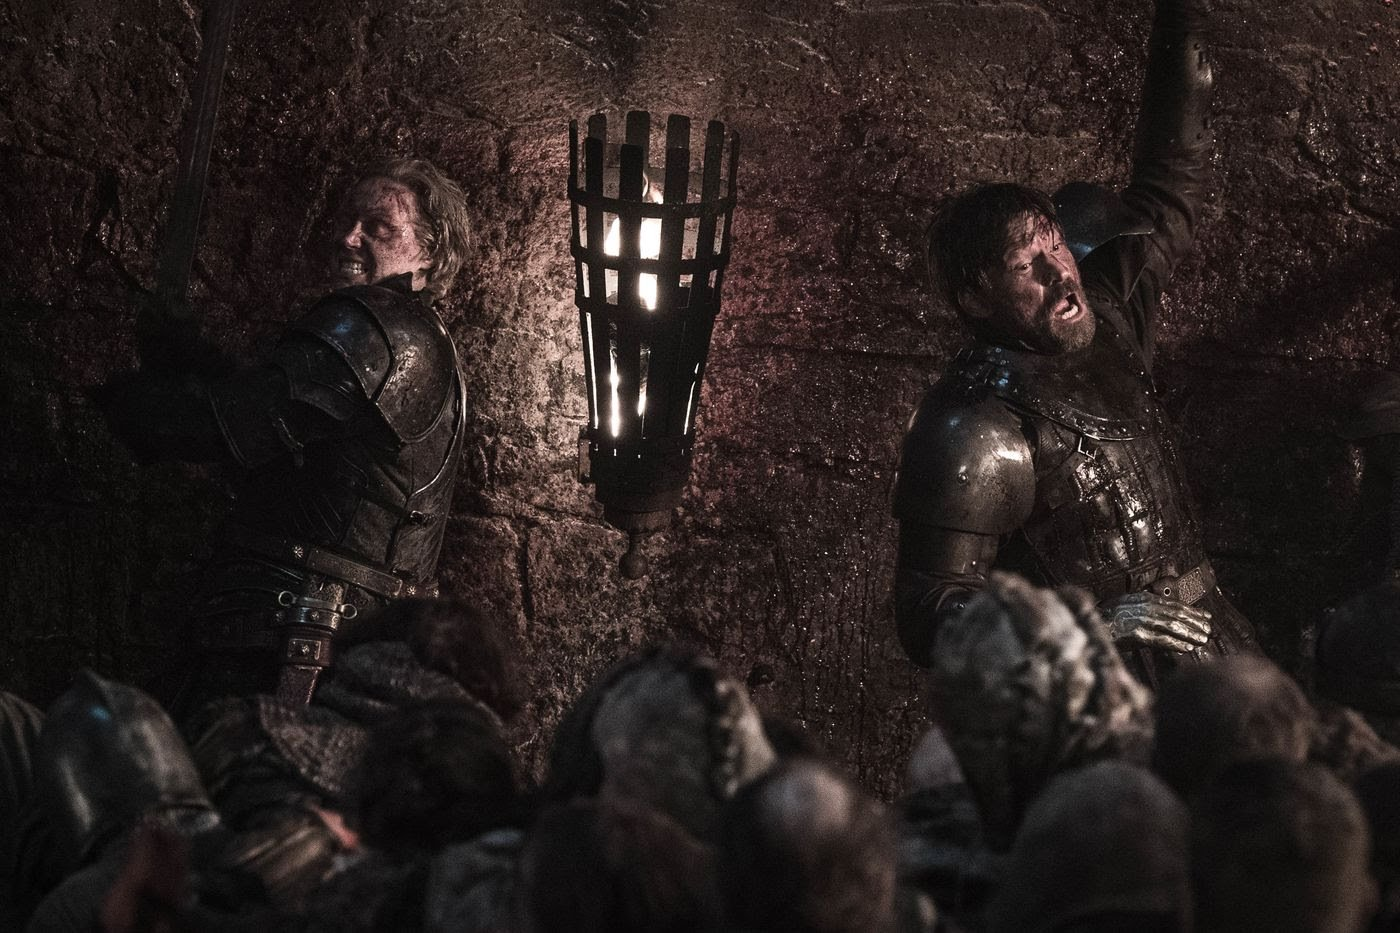 Game Of Thrones season 8 episode 3. S08E03 GOT.